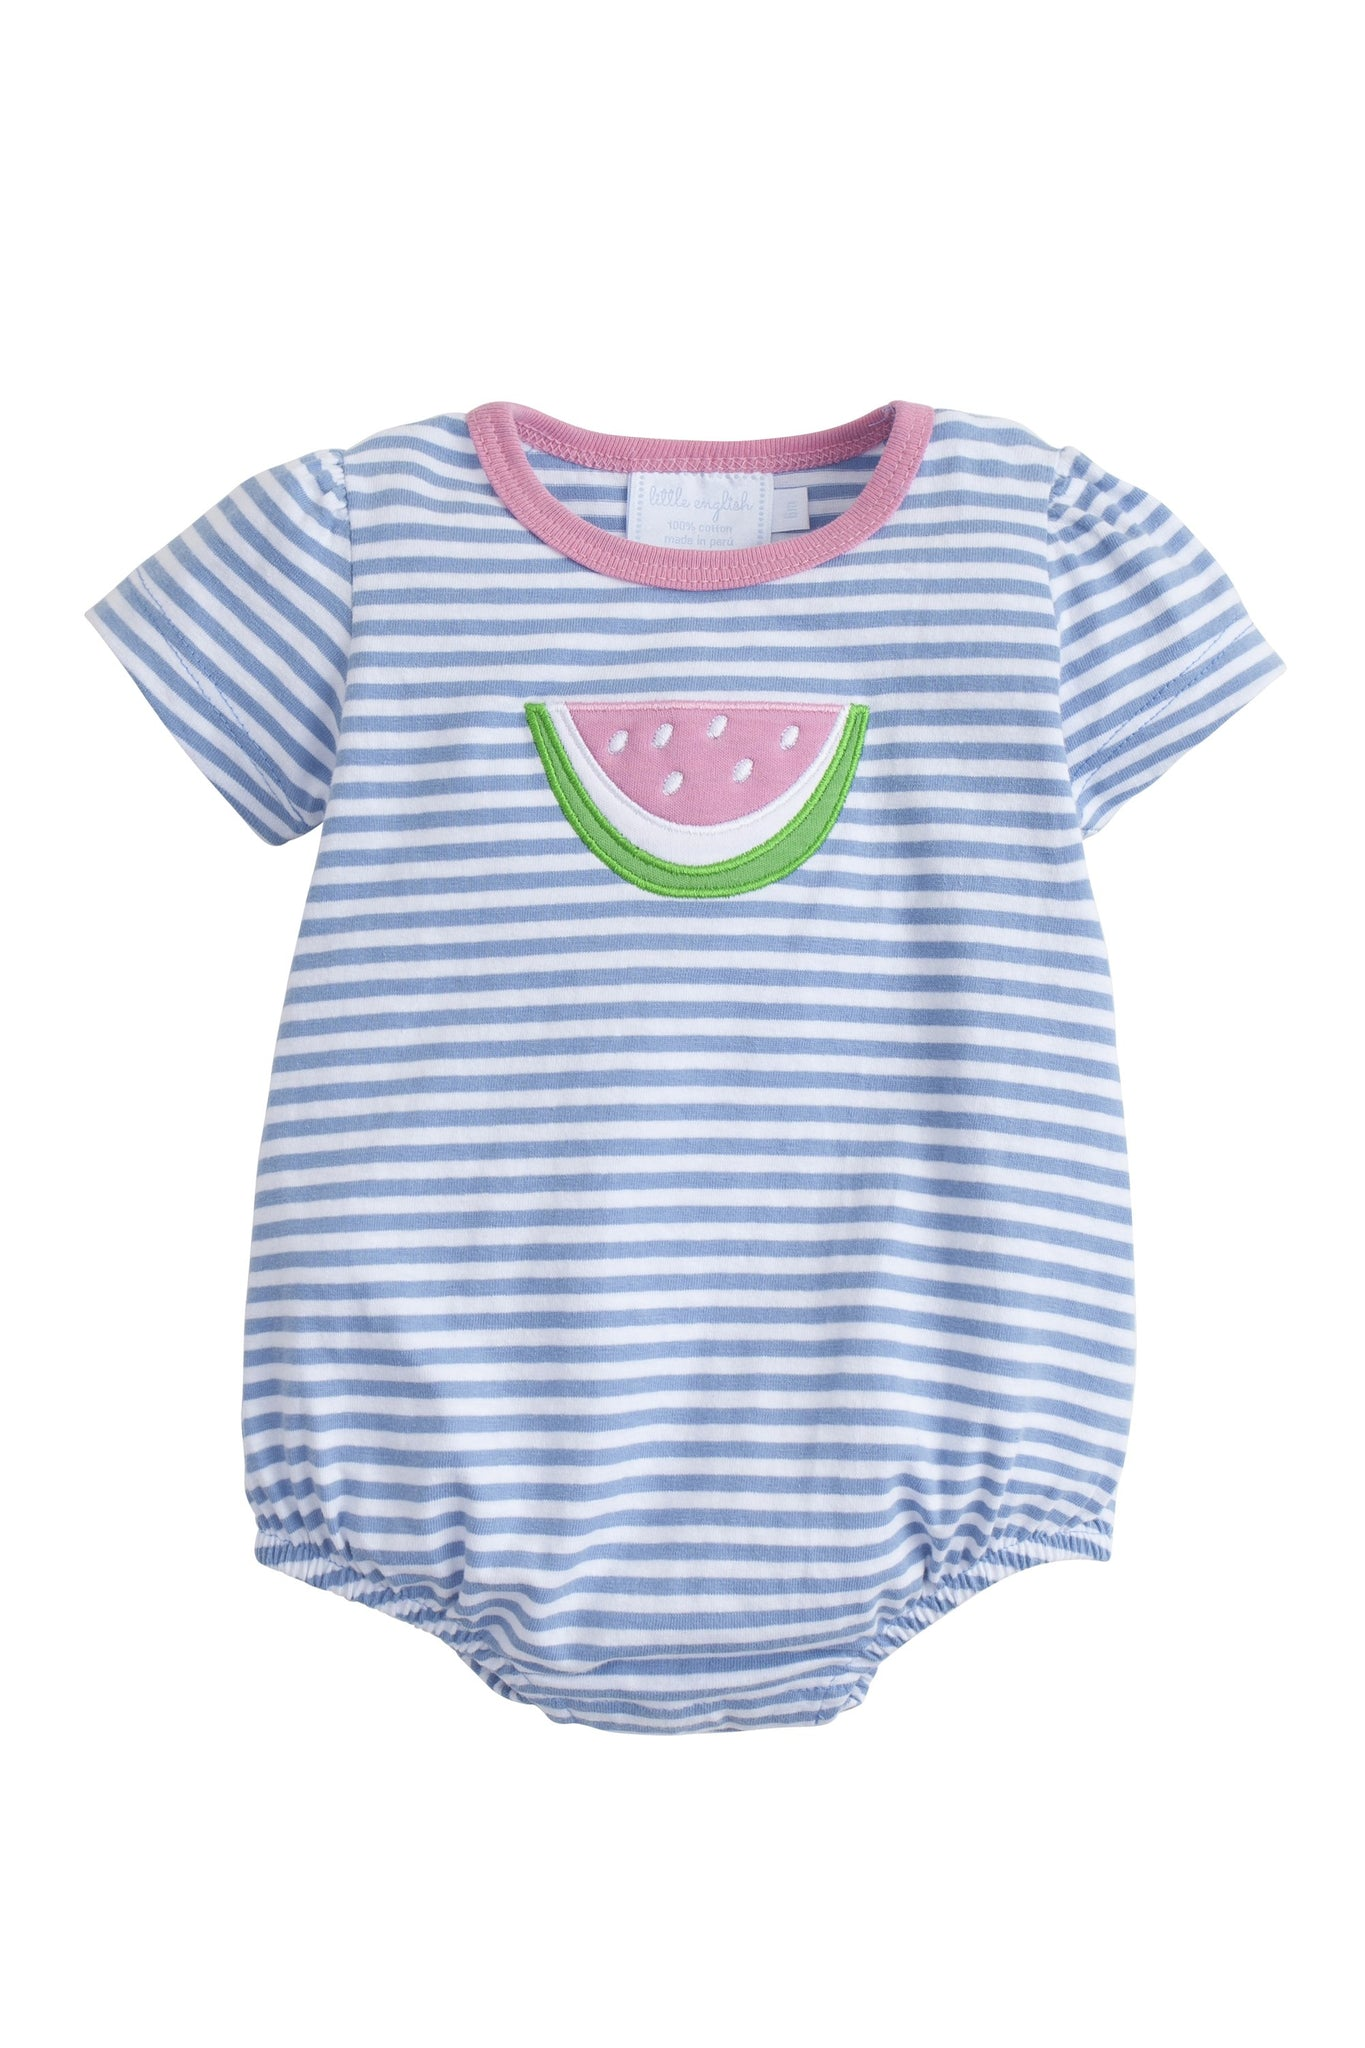 Little English Watermelon Bubble - Noa & Vivi Kids Apparel